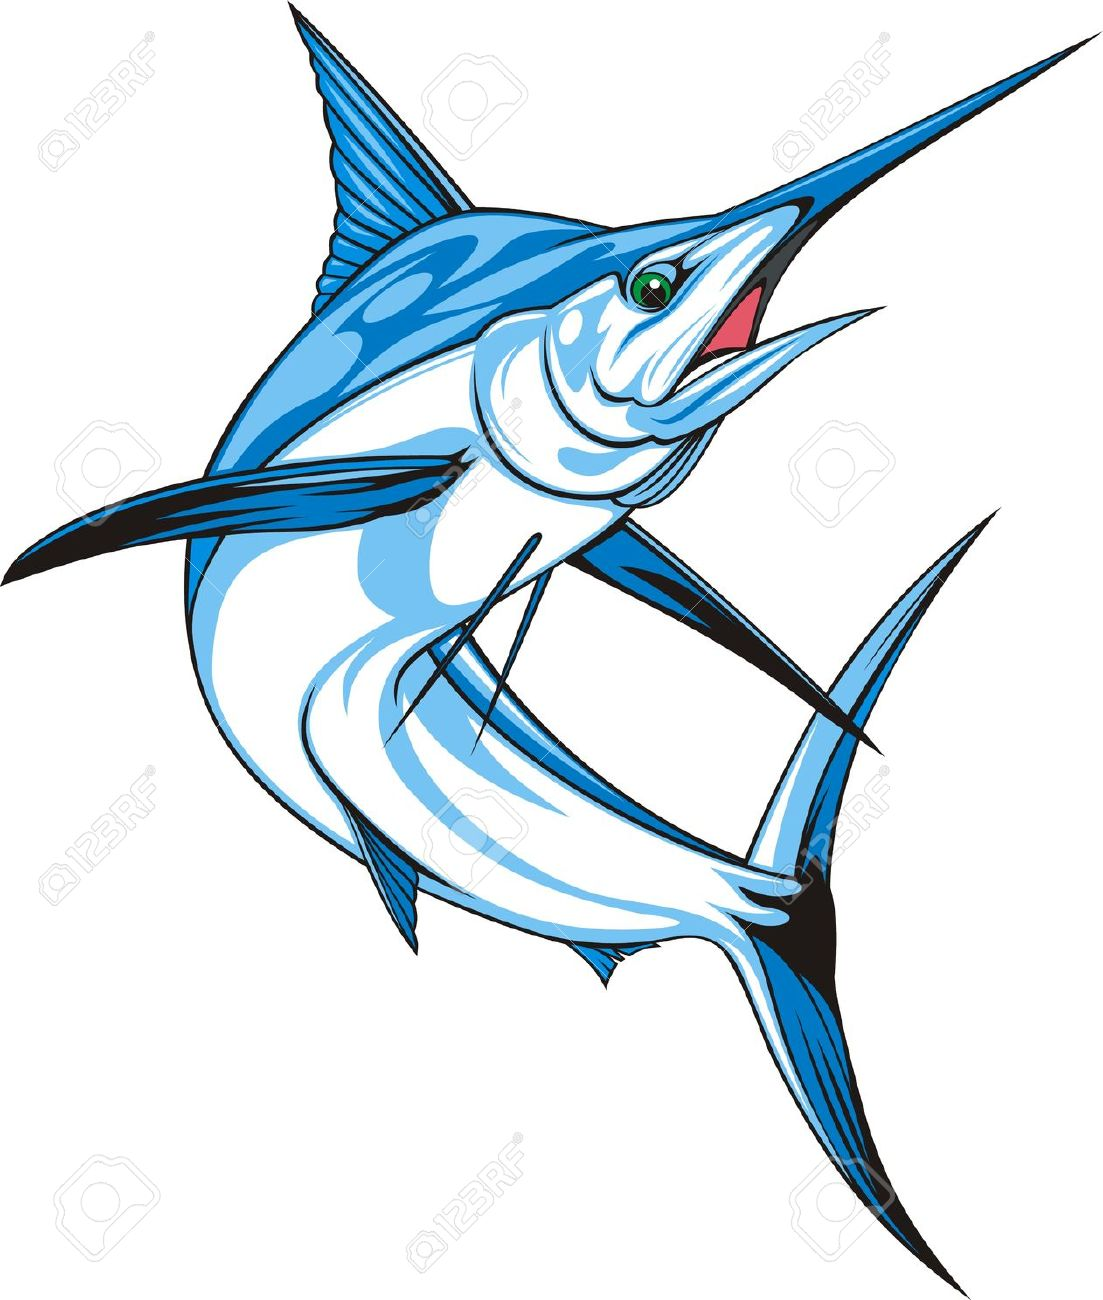 Sailfish clipart #9, Download drawings